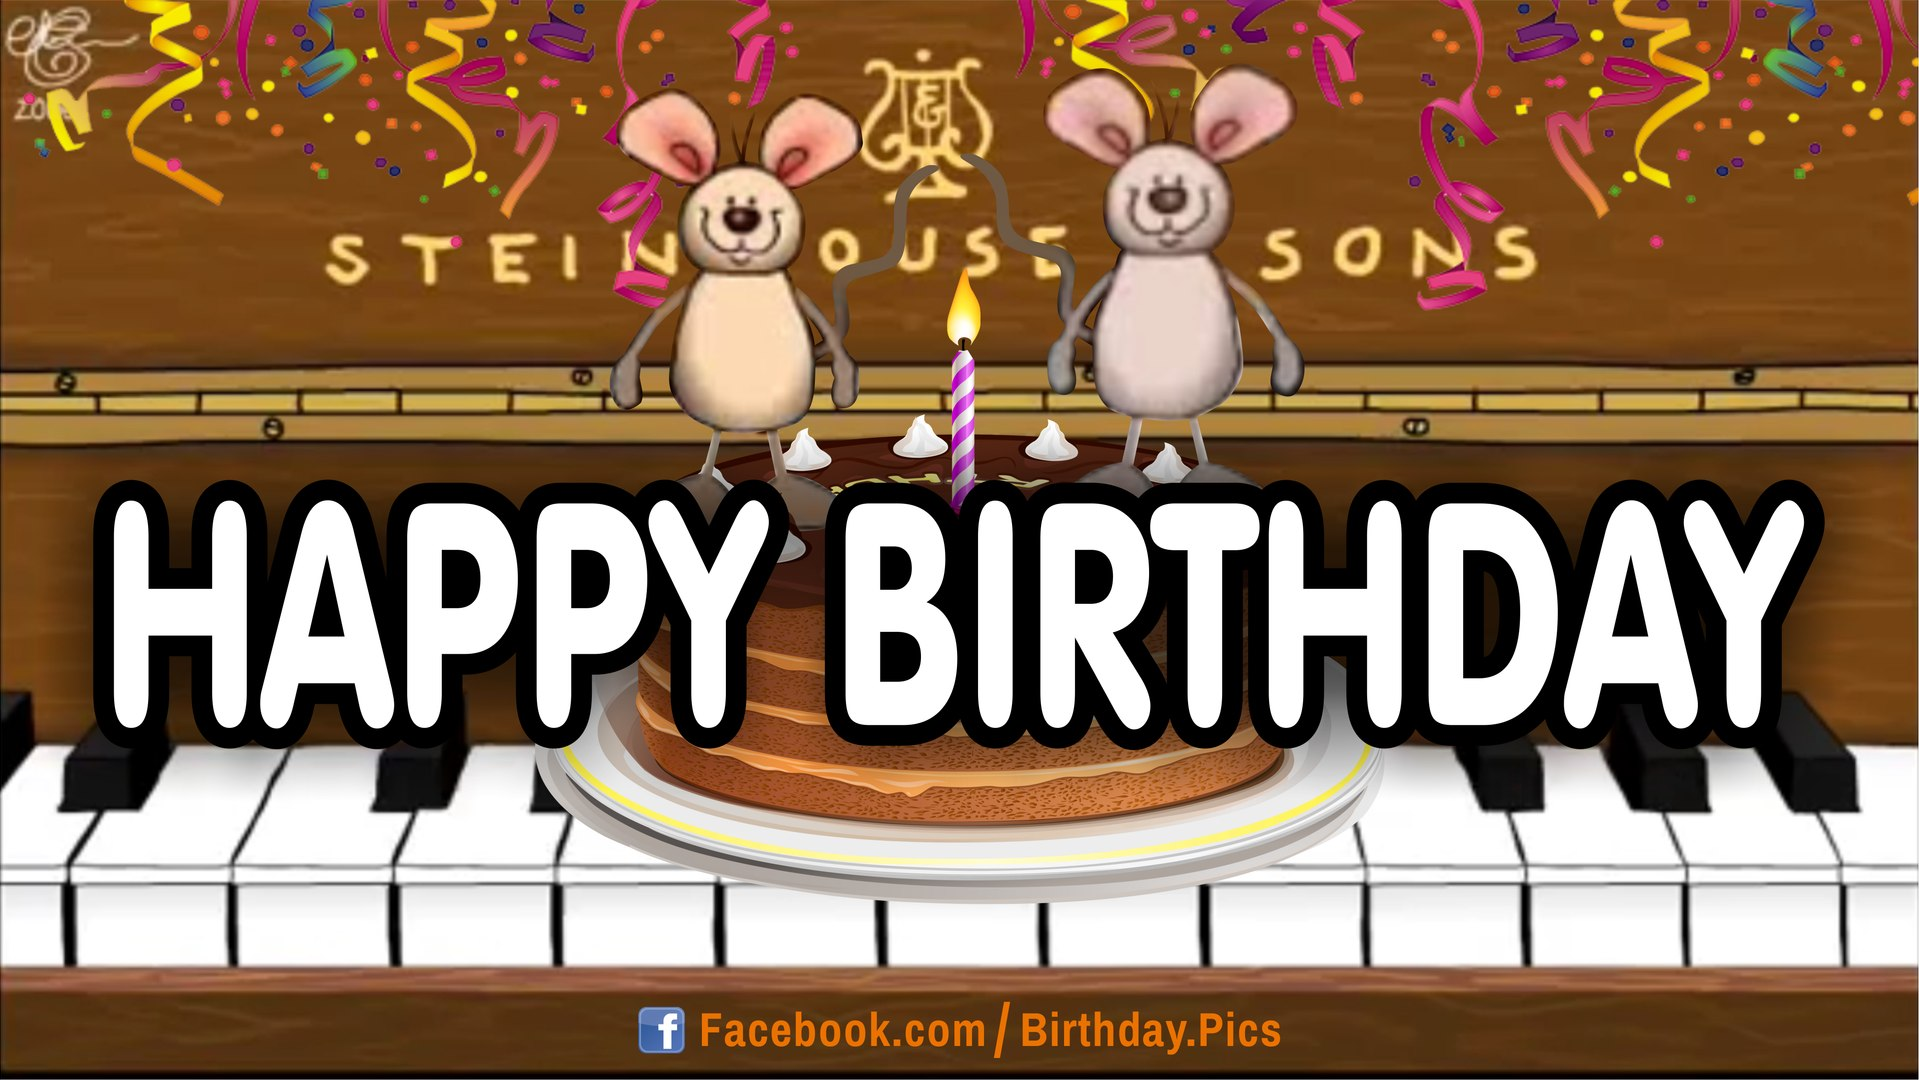 Happy Birthday Musical Mice Playing Piano Dailymotion Video